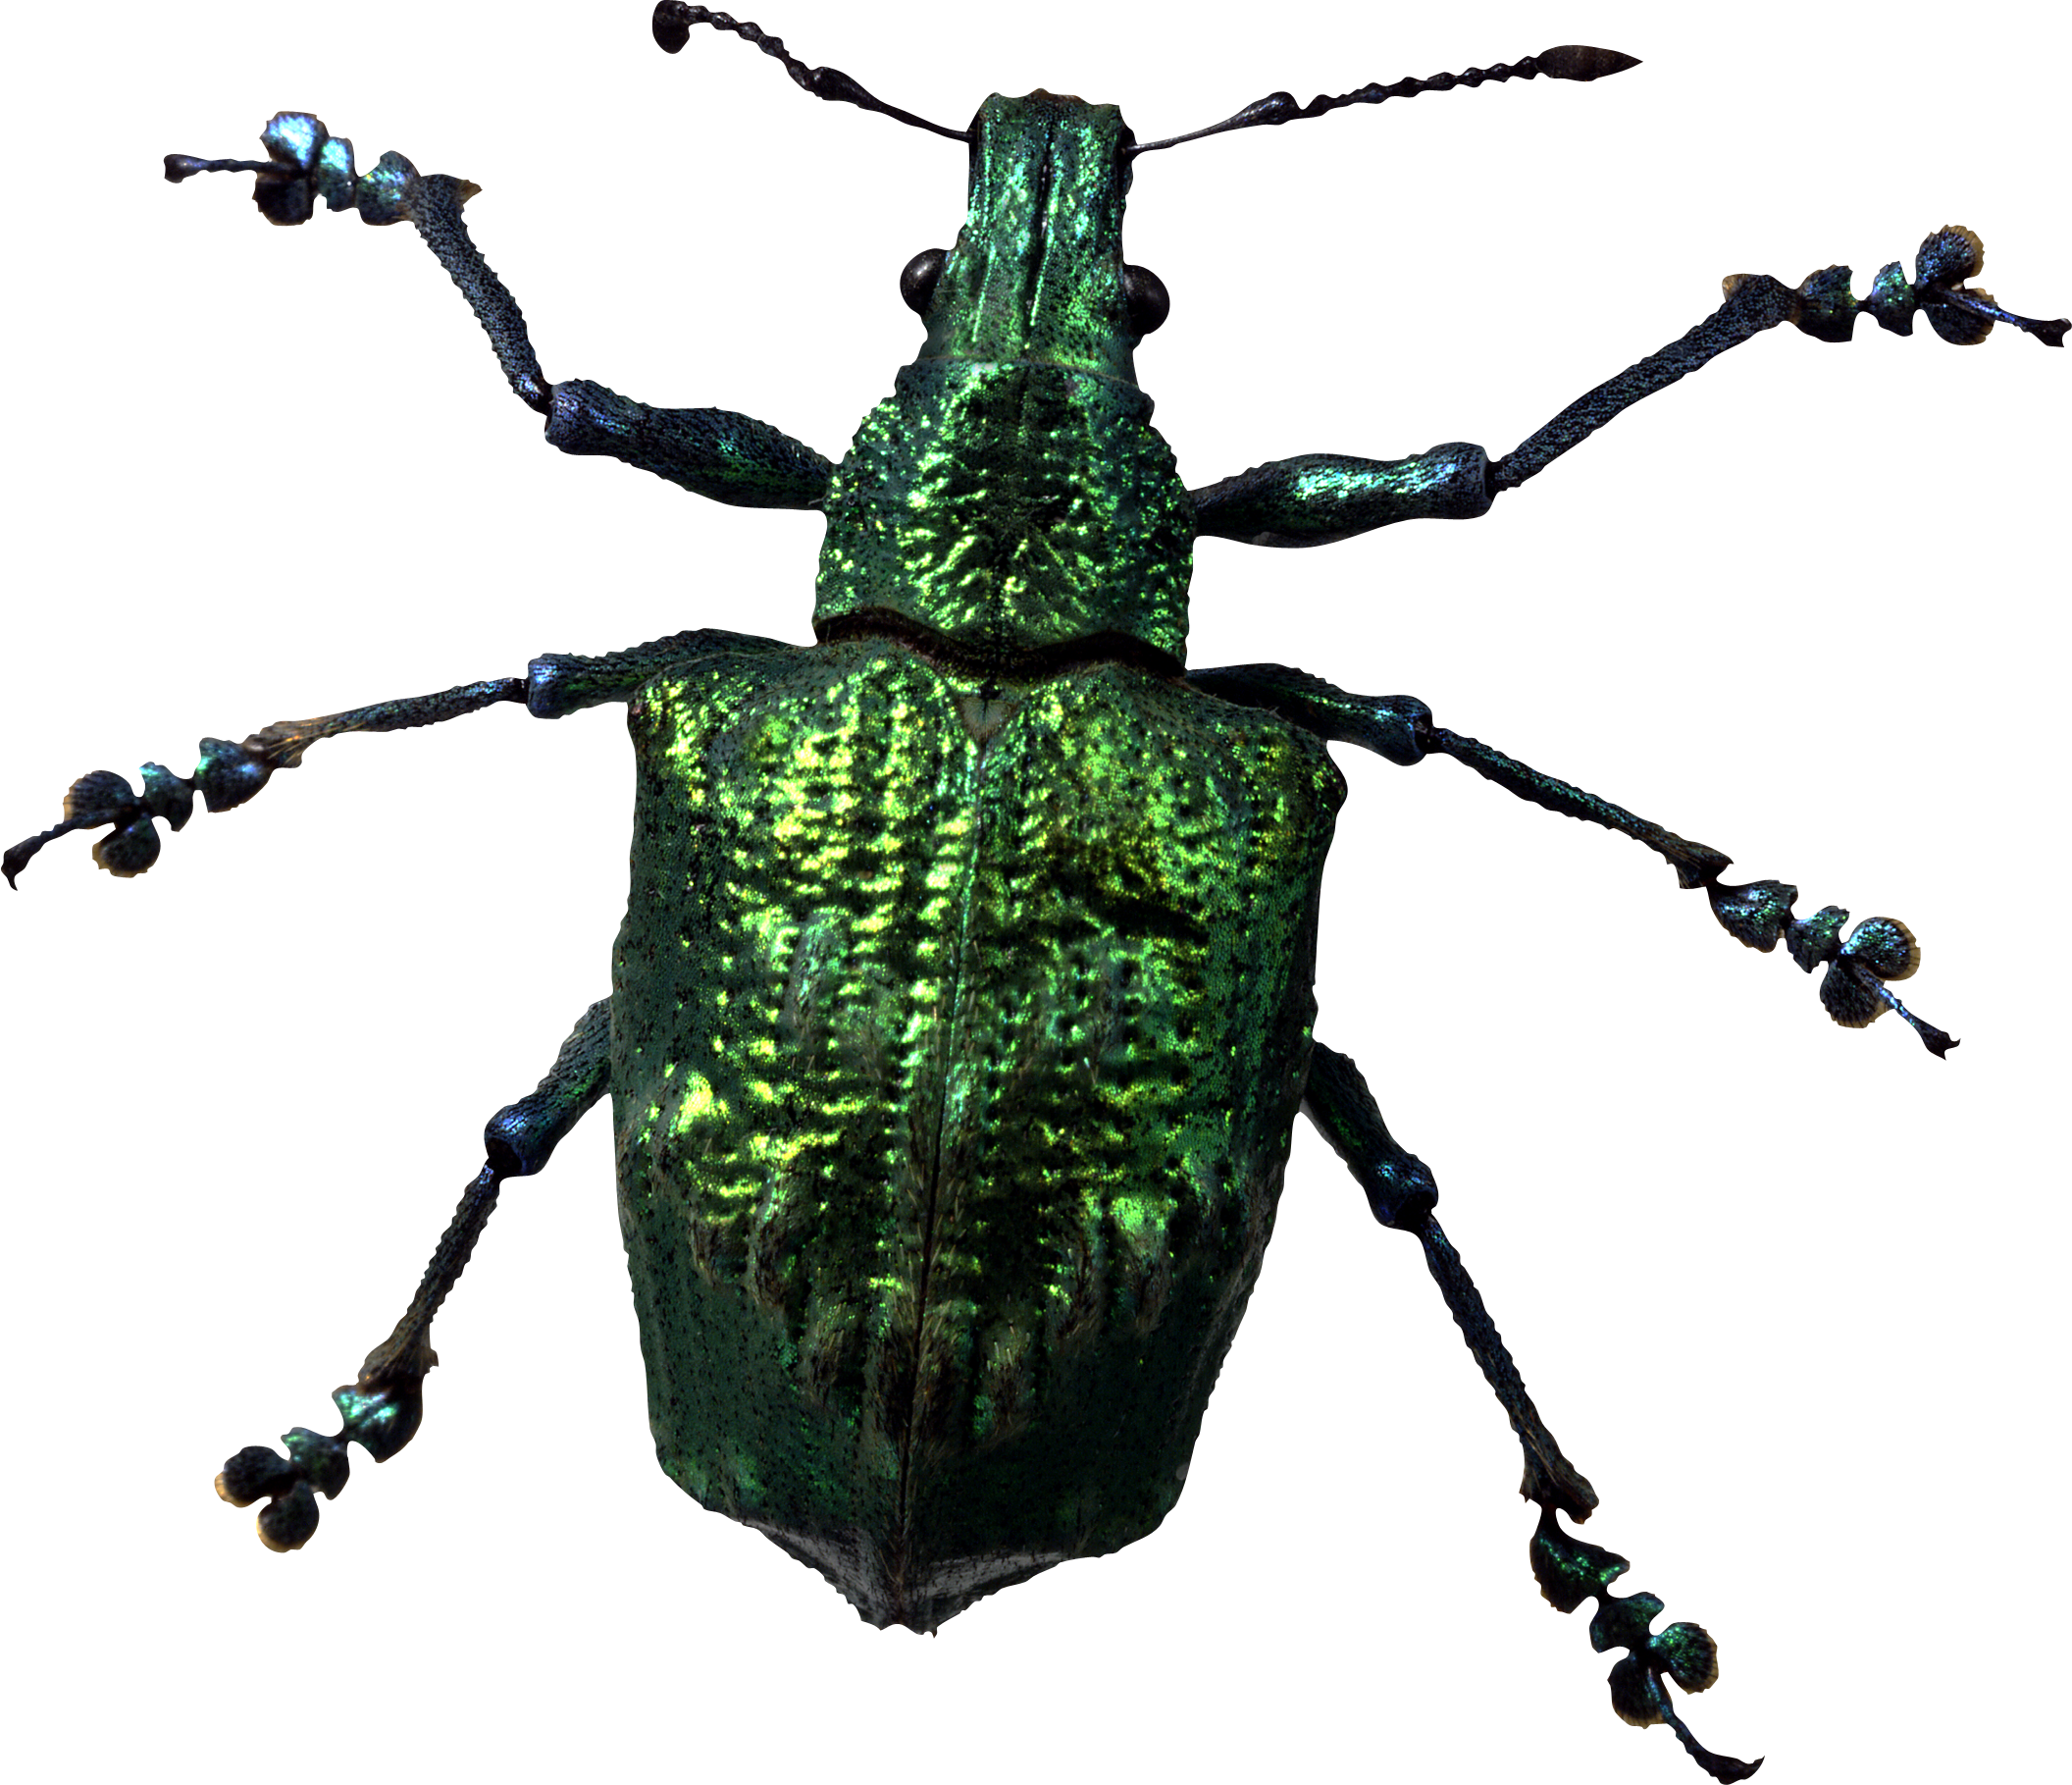 Png transparent images all. Insects clipart green insect